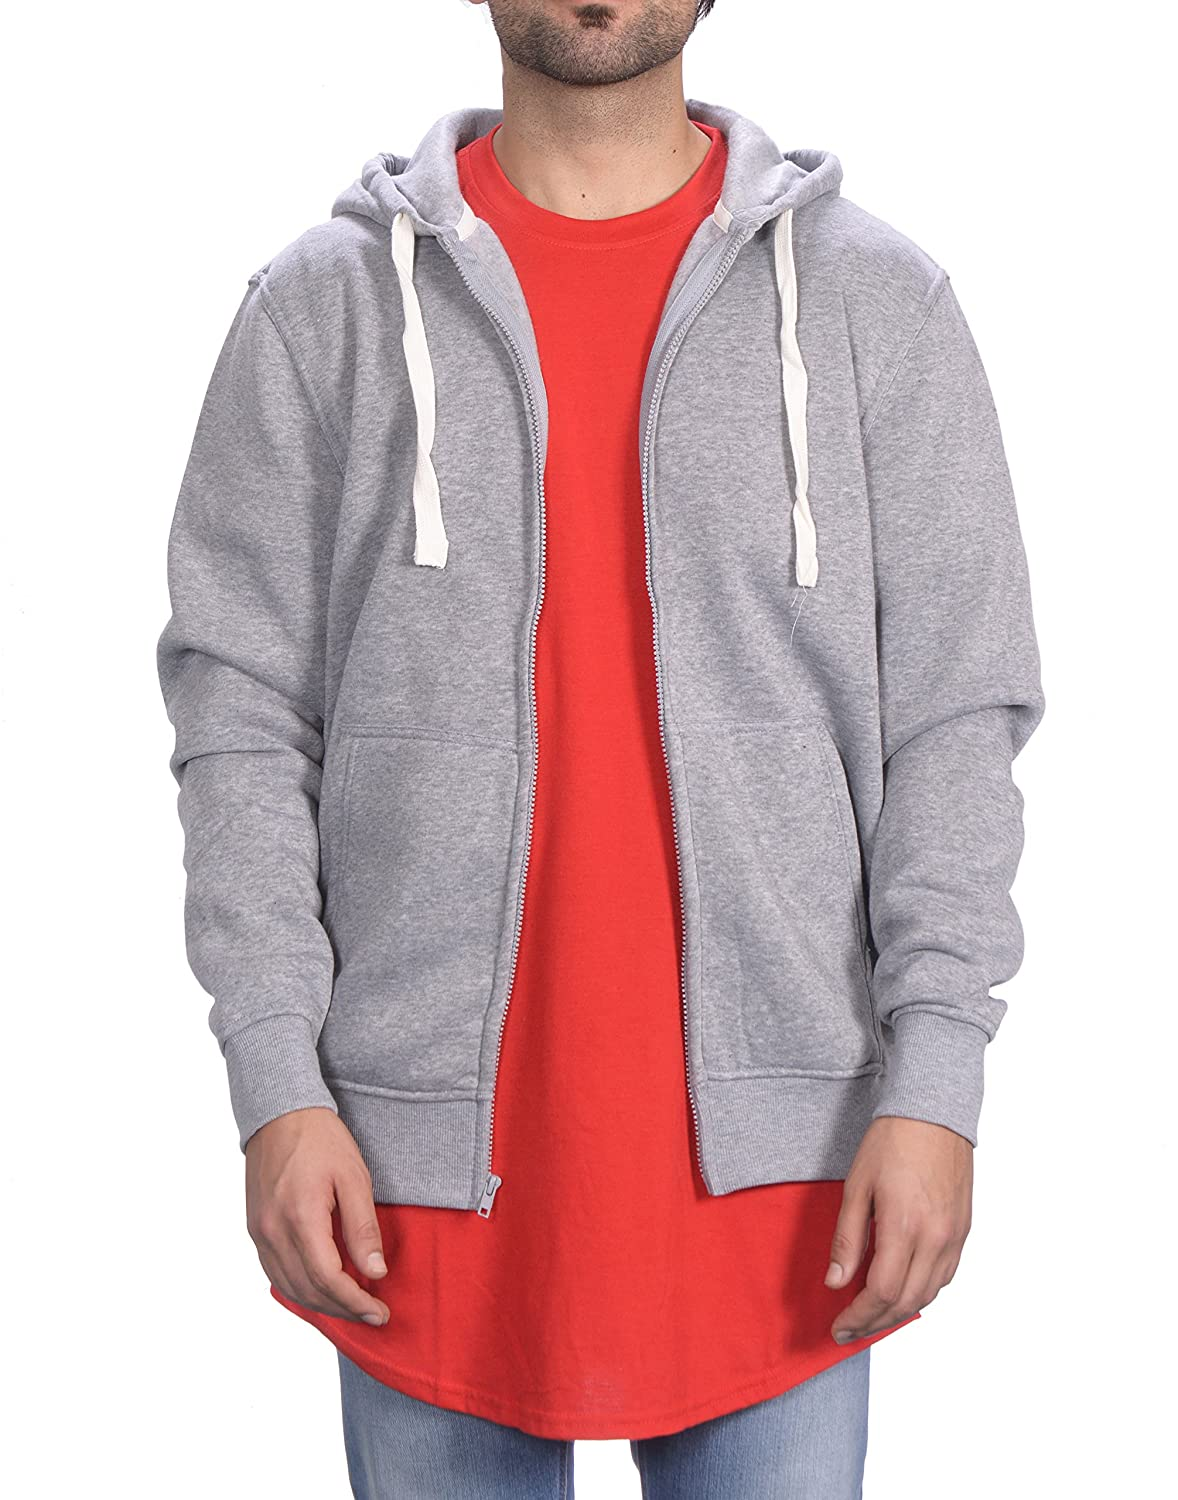 Cloak and Dagger Men's Basic Full Zip Hoodie